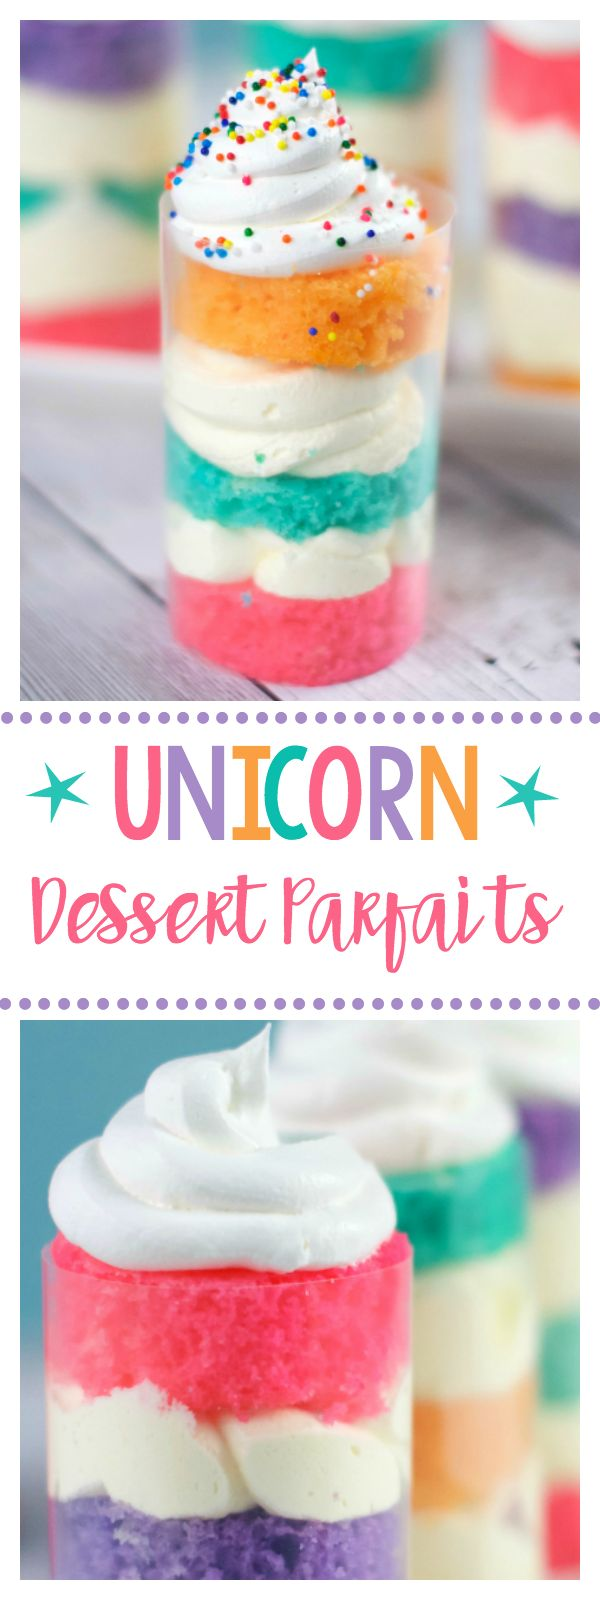 Unicorn Dessert Parfaits-Fun for Unicorn Birthday Parties or Just for FUN!